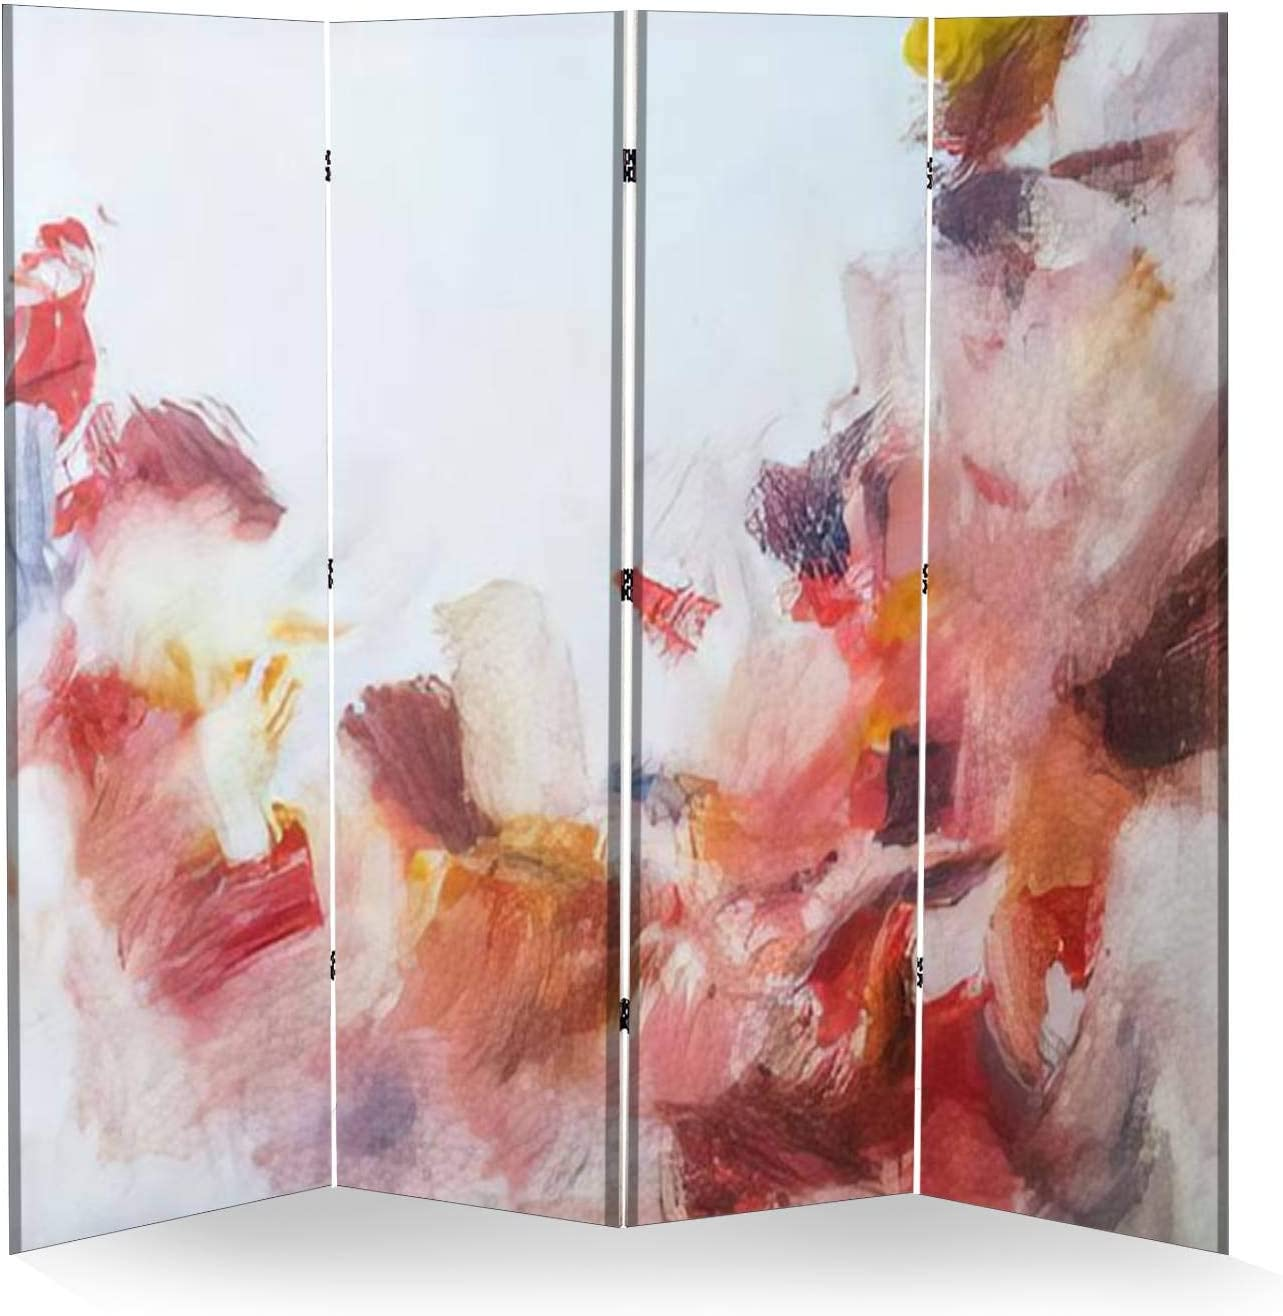 Discount mail order 4 Panel Wall Divider service Flowers Texture Painting Abstract